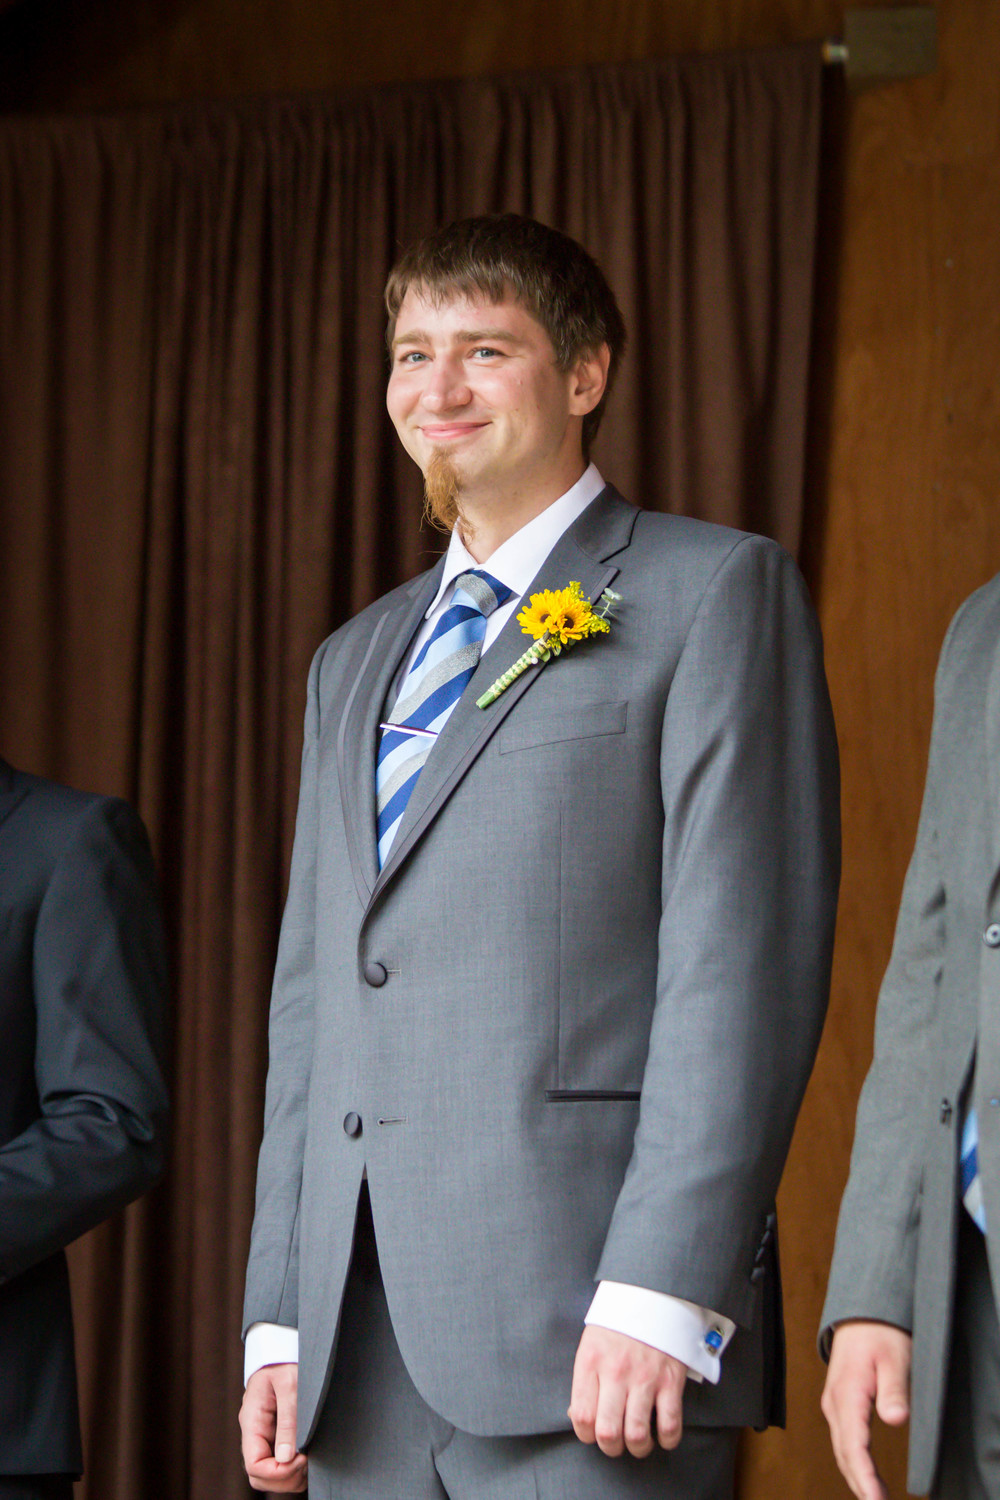 Jon seeing Amanda for the first time that day, as she walked down the aisle.